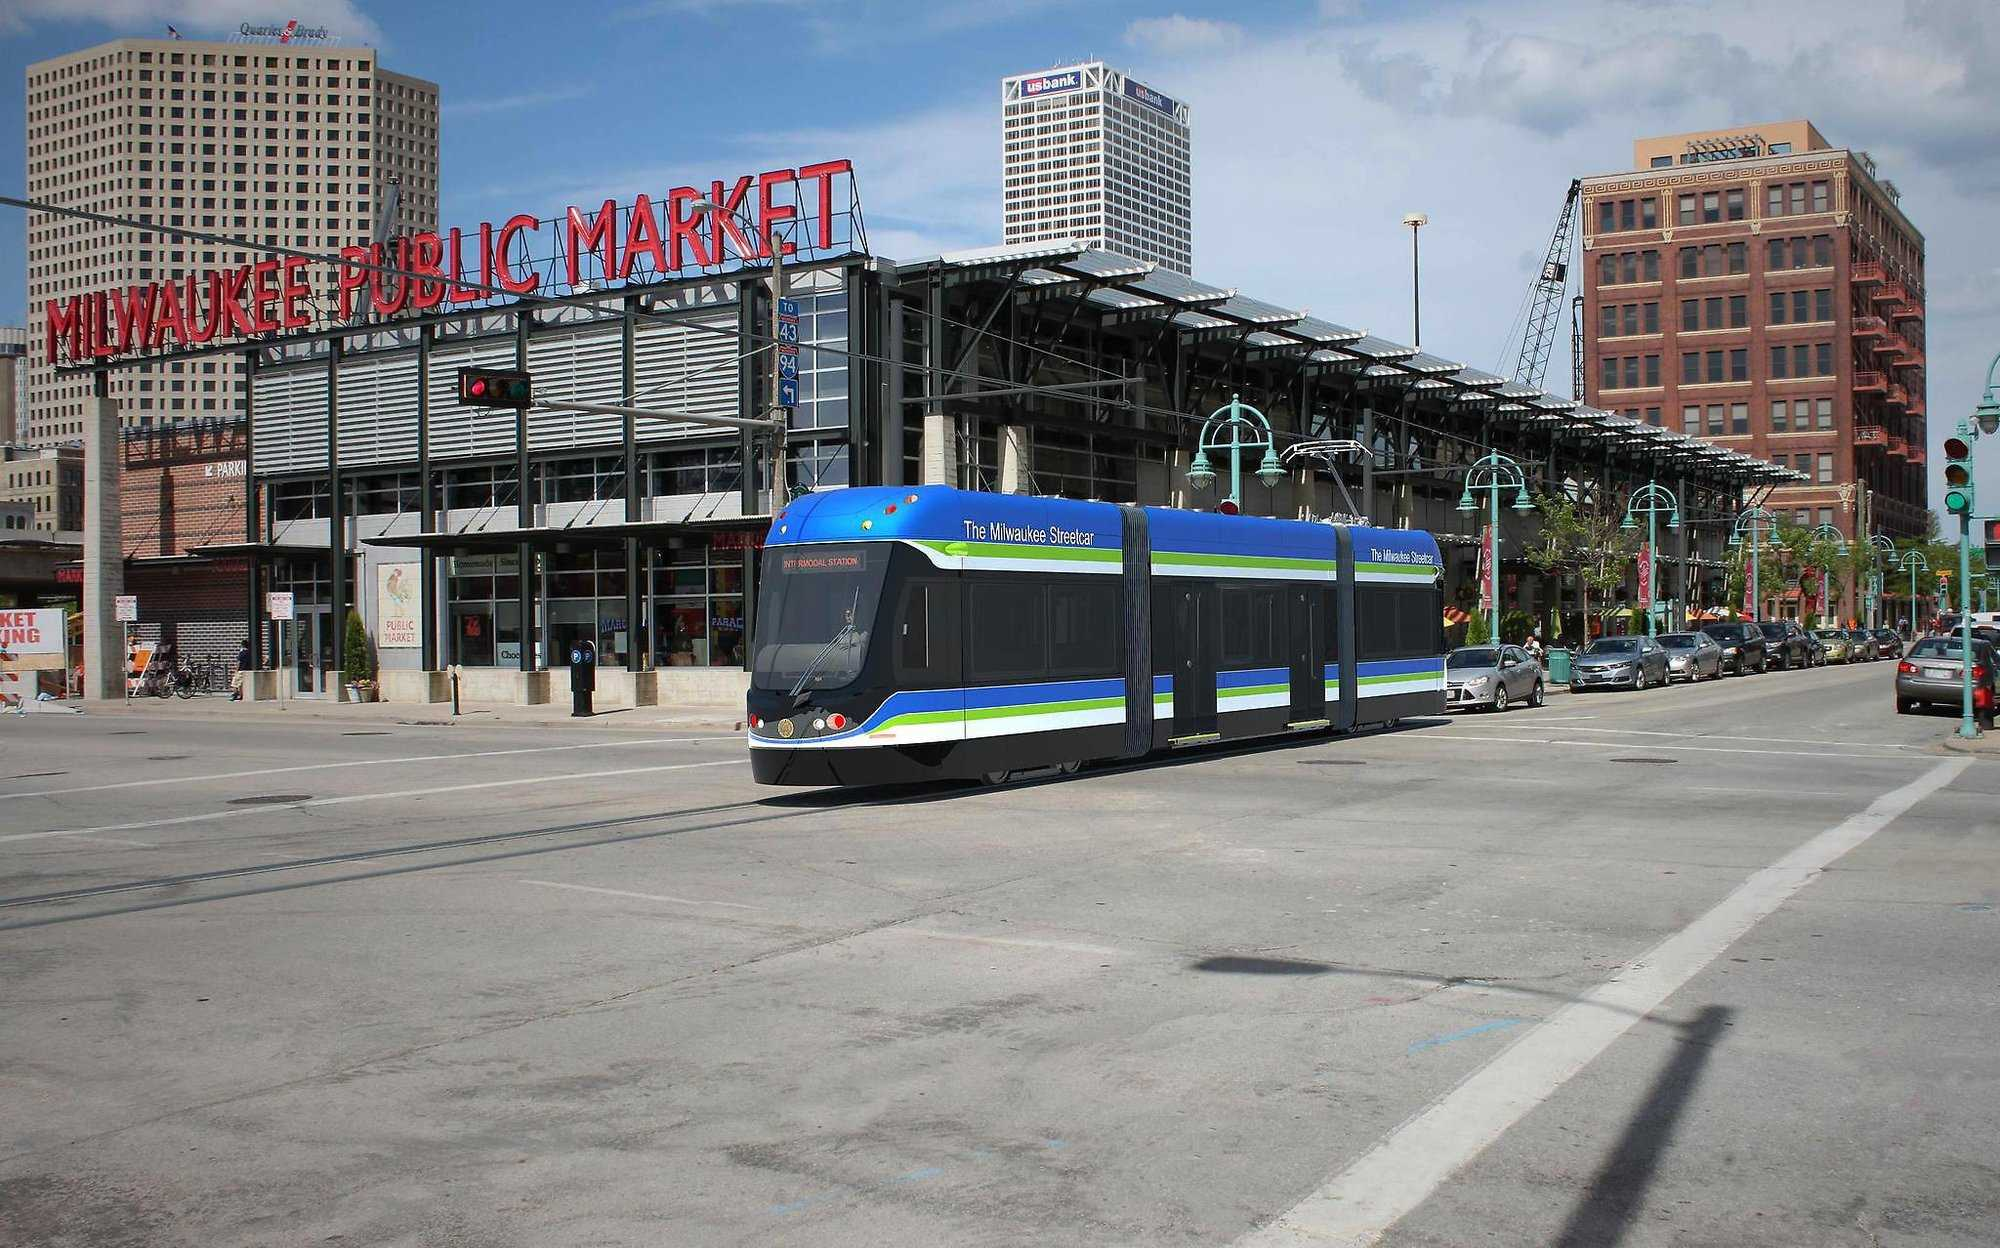 The streetcar's 2.5-mile route will include the downtown area and a loop around the lakefront, including major Milwaukee events, like Summerfest, along Streetcar stops. Photo via themilwaukeestreetcar.com